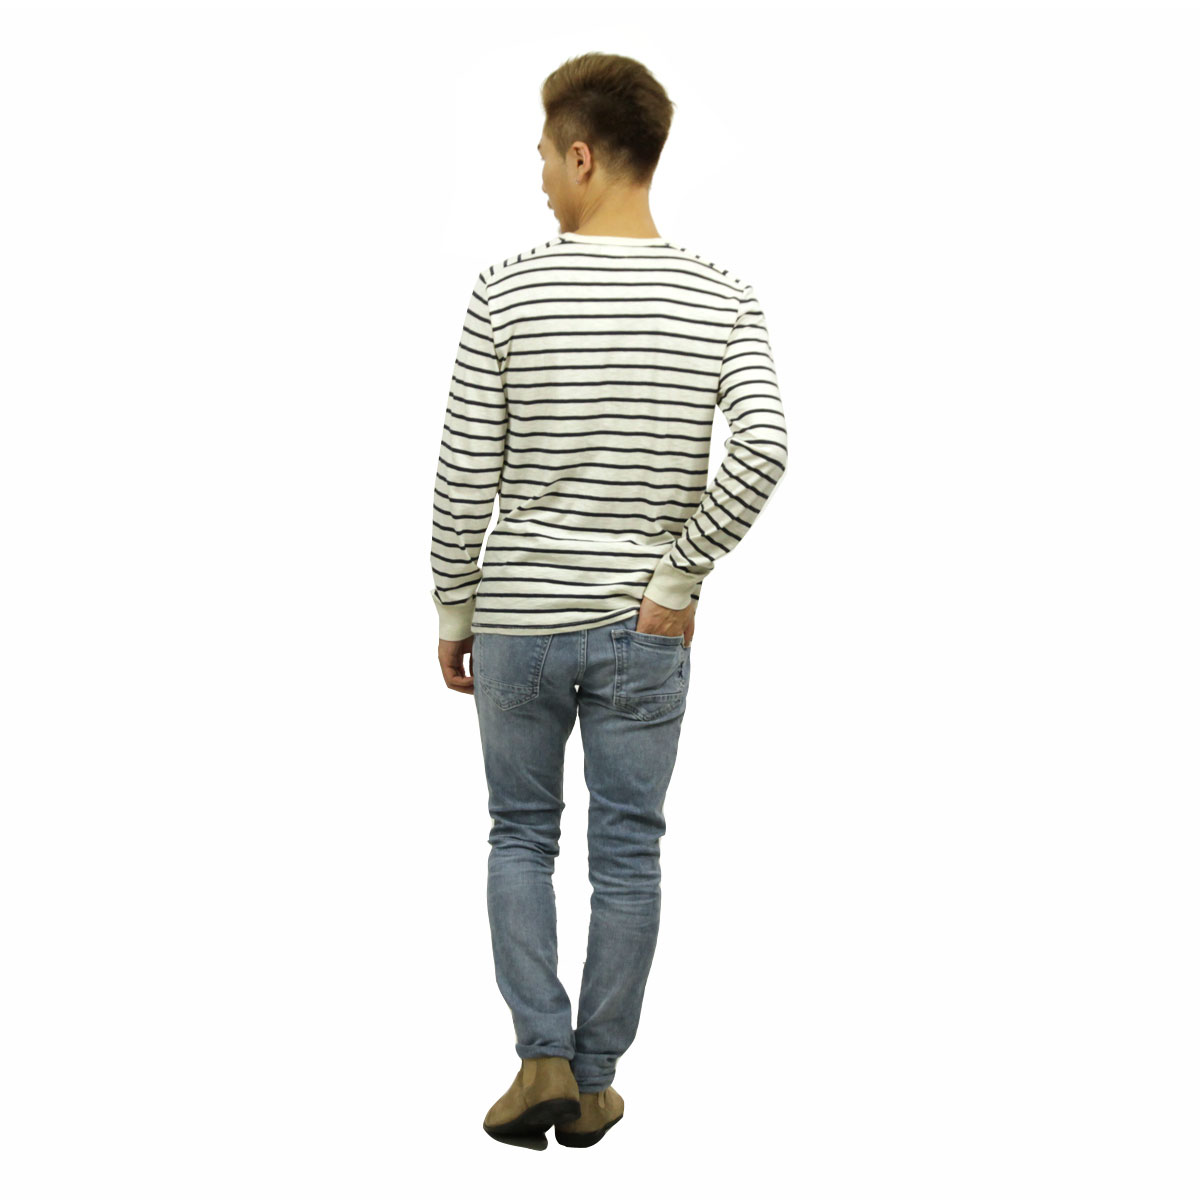 ジェイクルー J.CREW 正規品 メンズ 長袖Tシャツ LONG-SLEEVE DECK-STRIPED TEXTURED COTTON T-SHIRT c7931